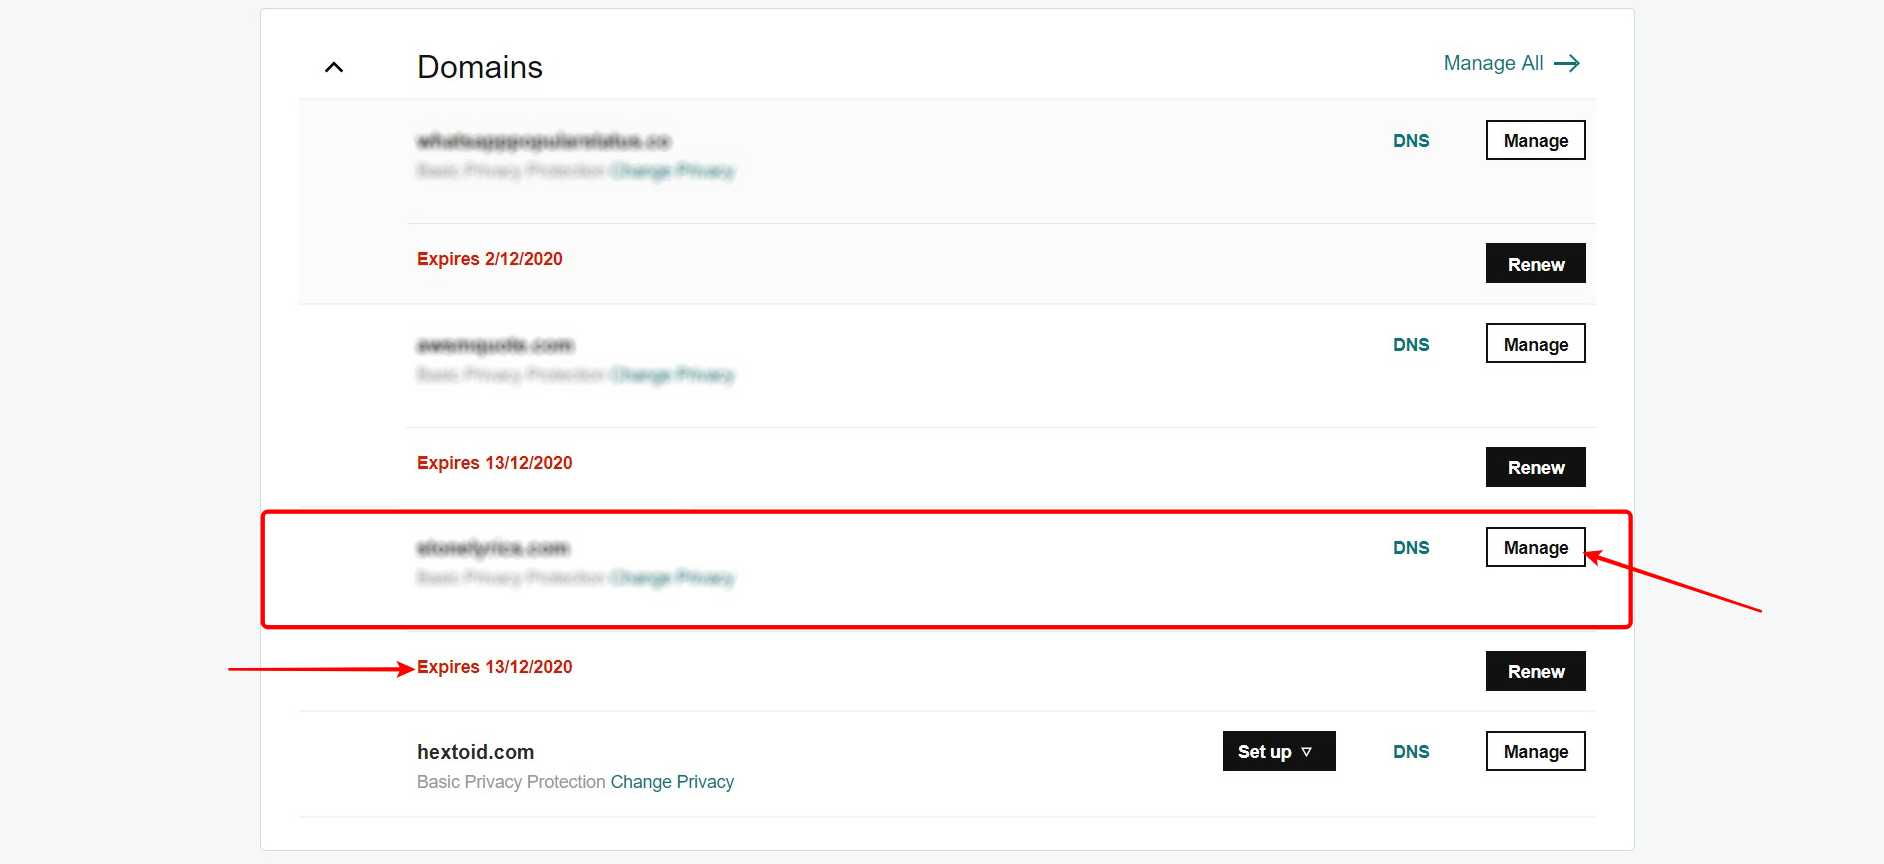 Login to GoDaddy account > My Products > Under Domain section, Tap on Manage near the domain you want to transfer